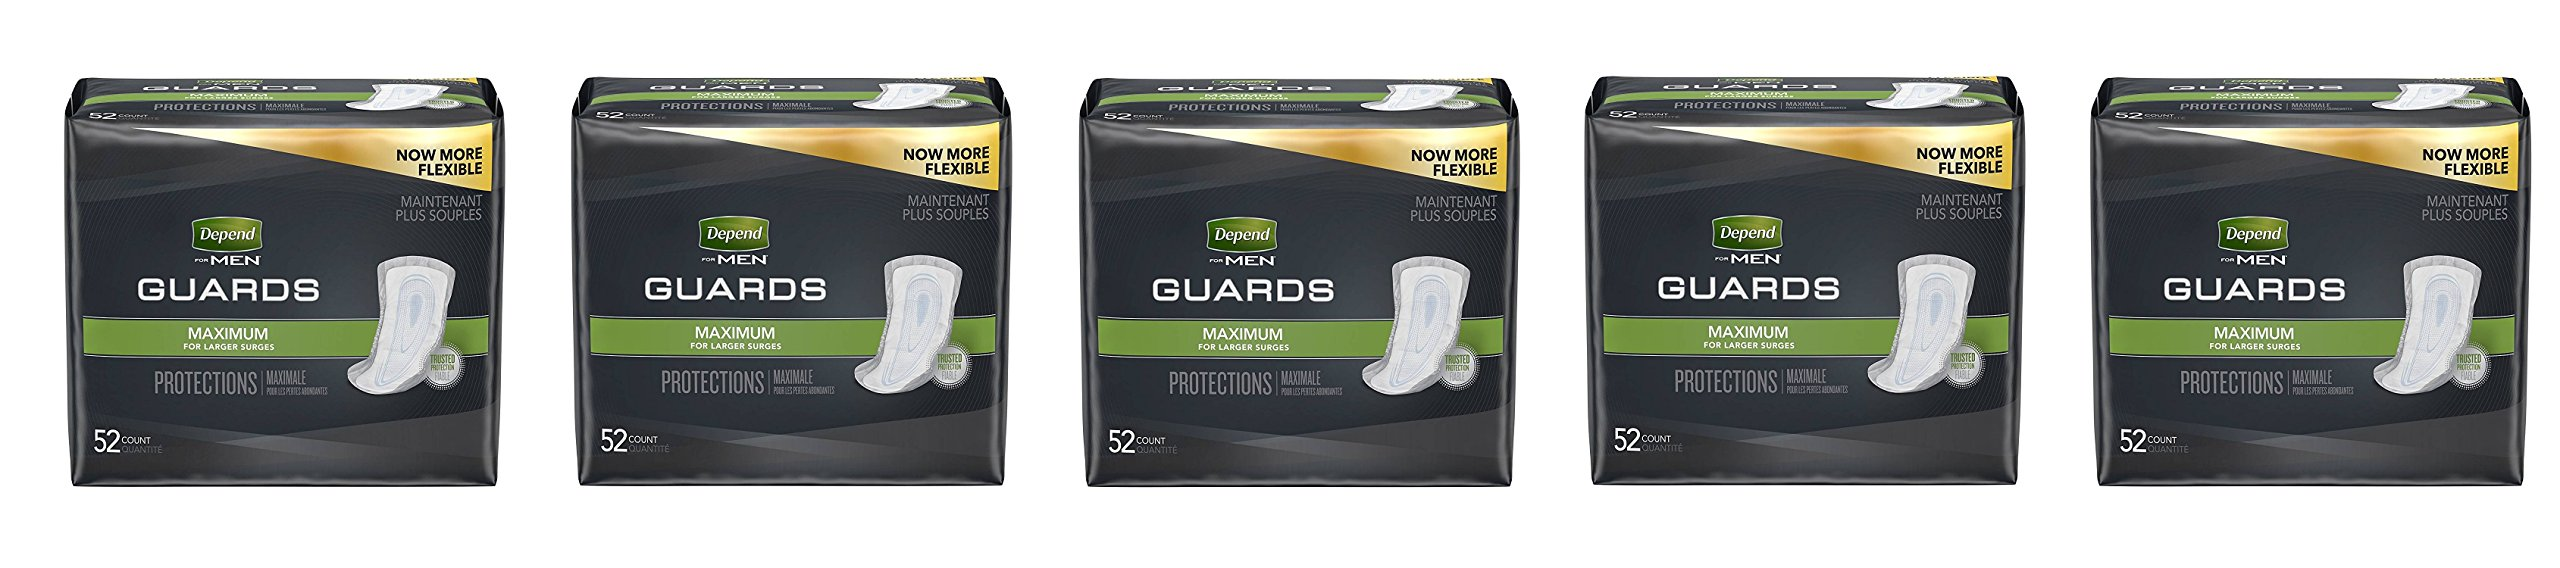 Depend Incontinence Guards GCtlgd for Men, Maximum Absorbency, (Packaging May Vary), 52 Count (Pack of 5)